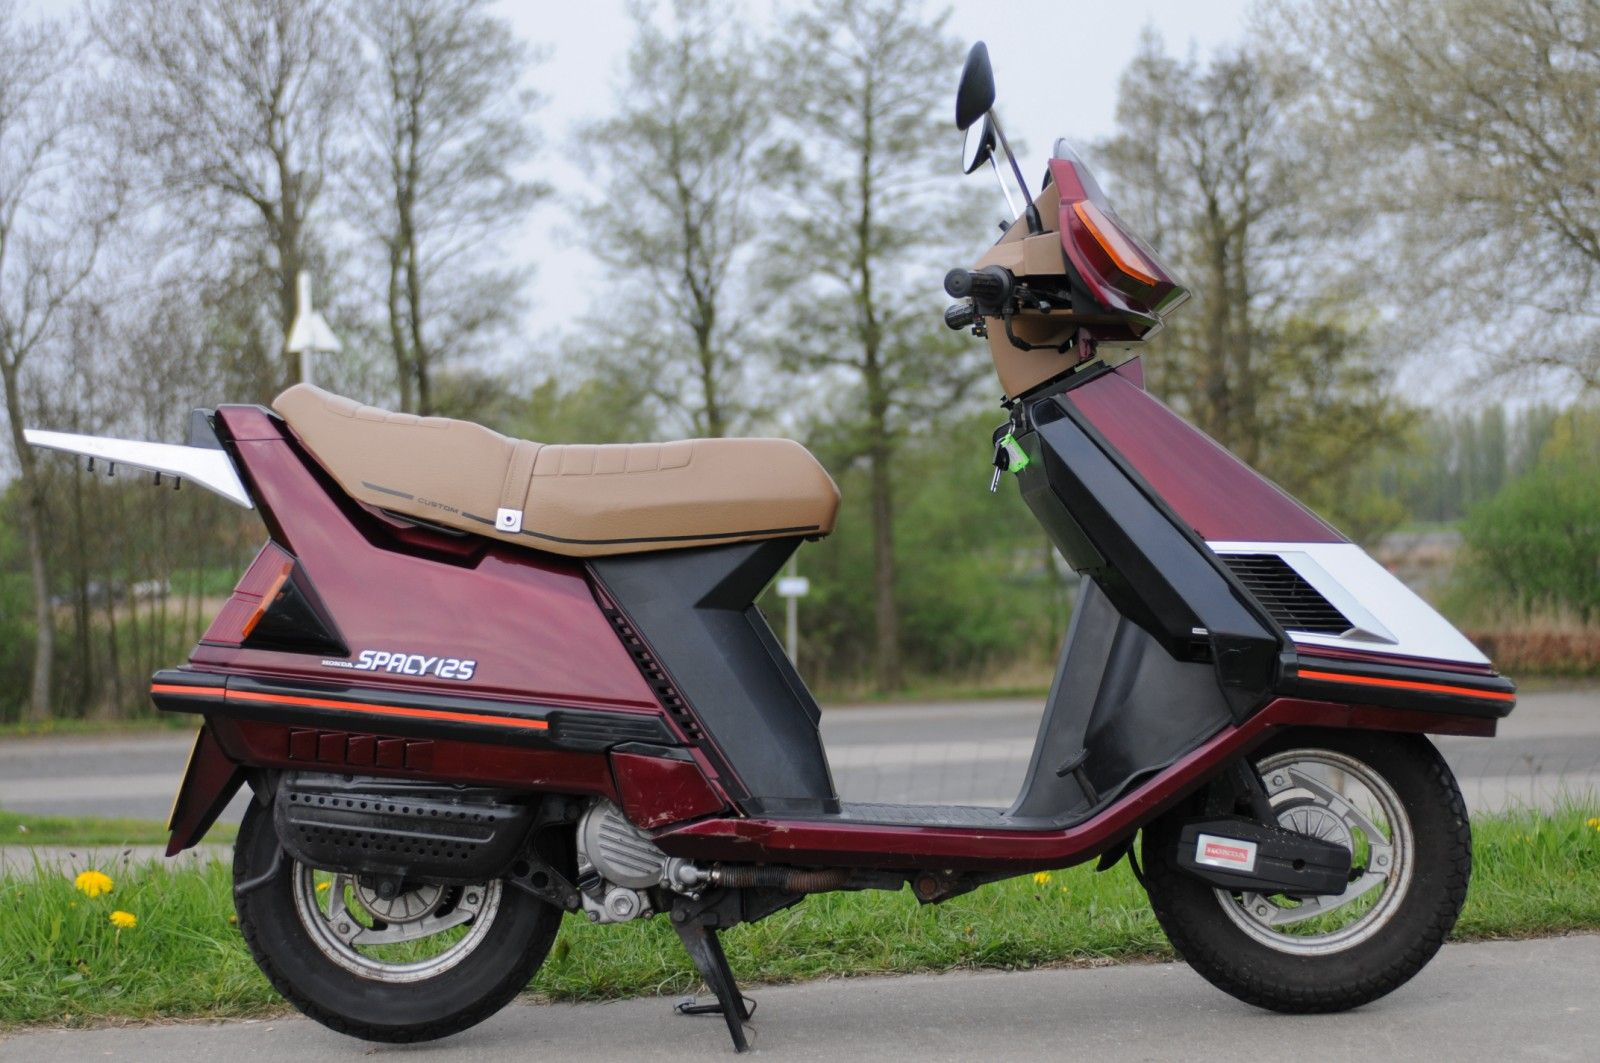 Honda Spacy 125 Scooter Scooter Design Honda Scooters